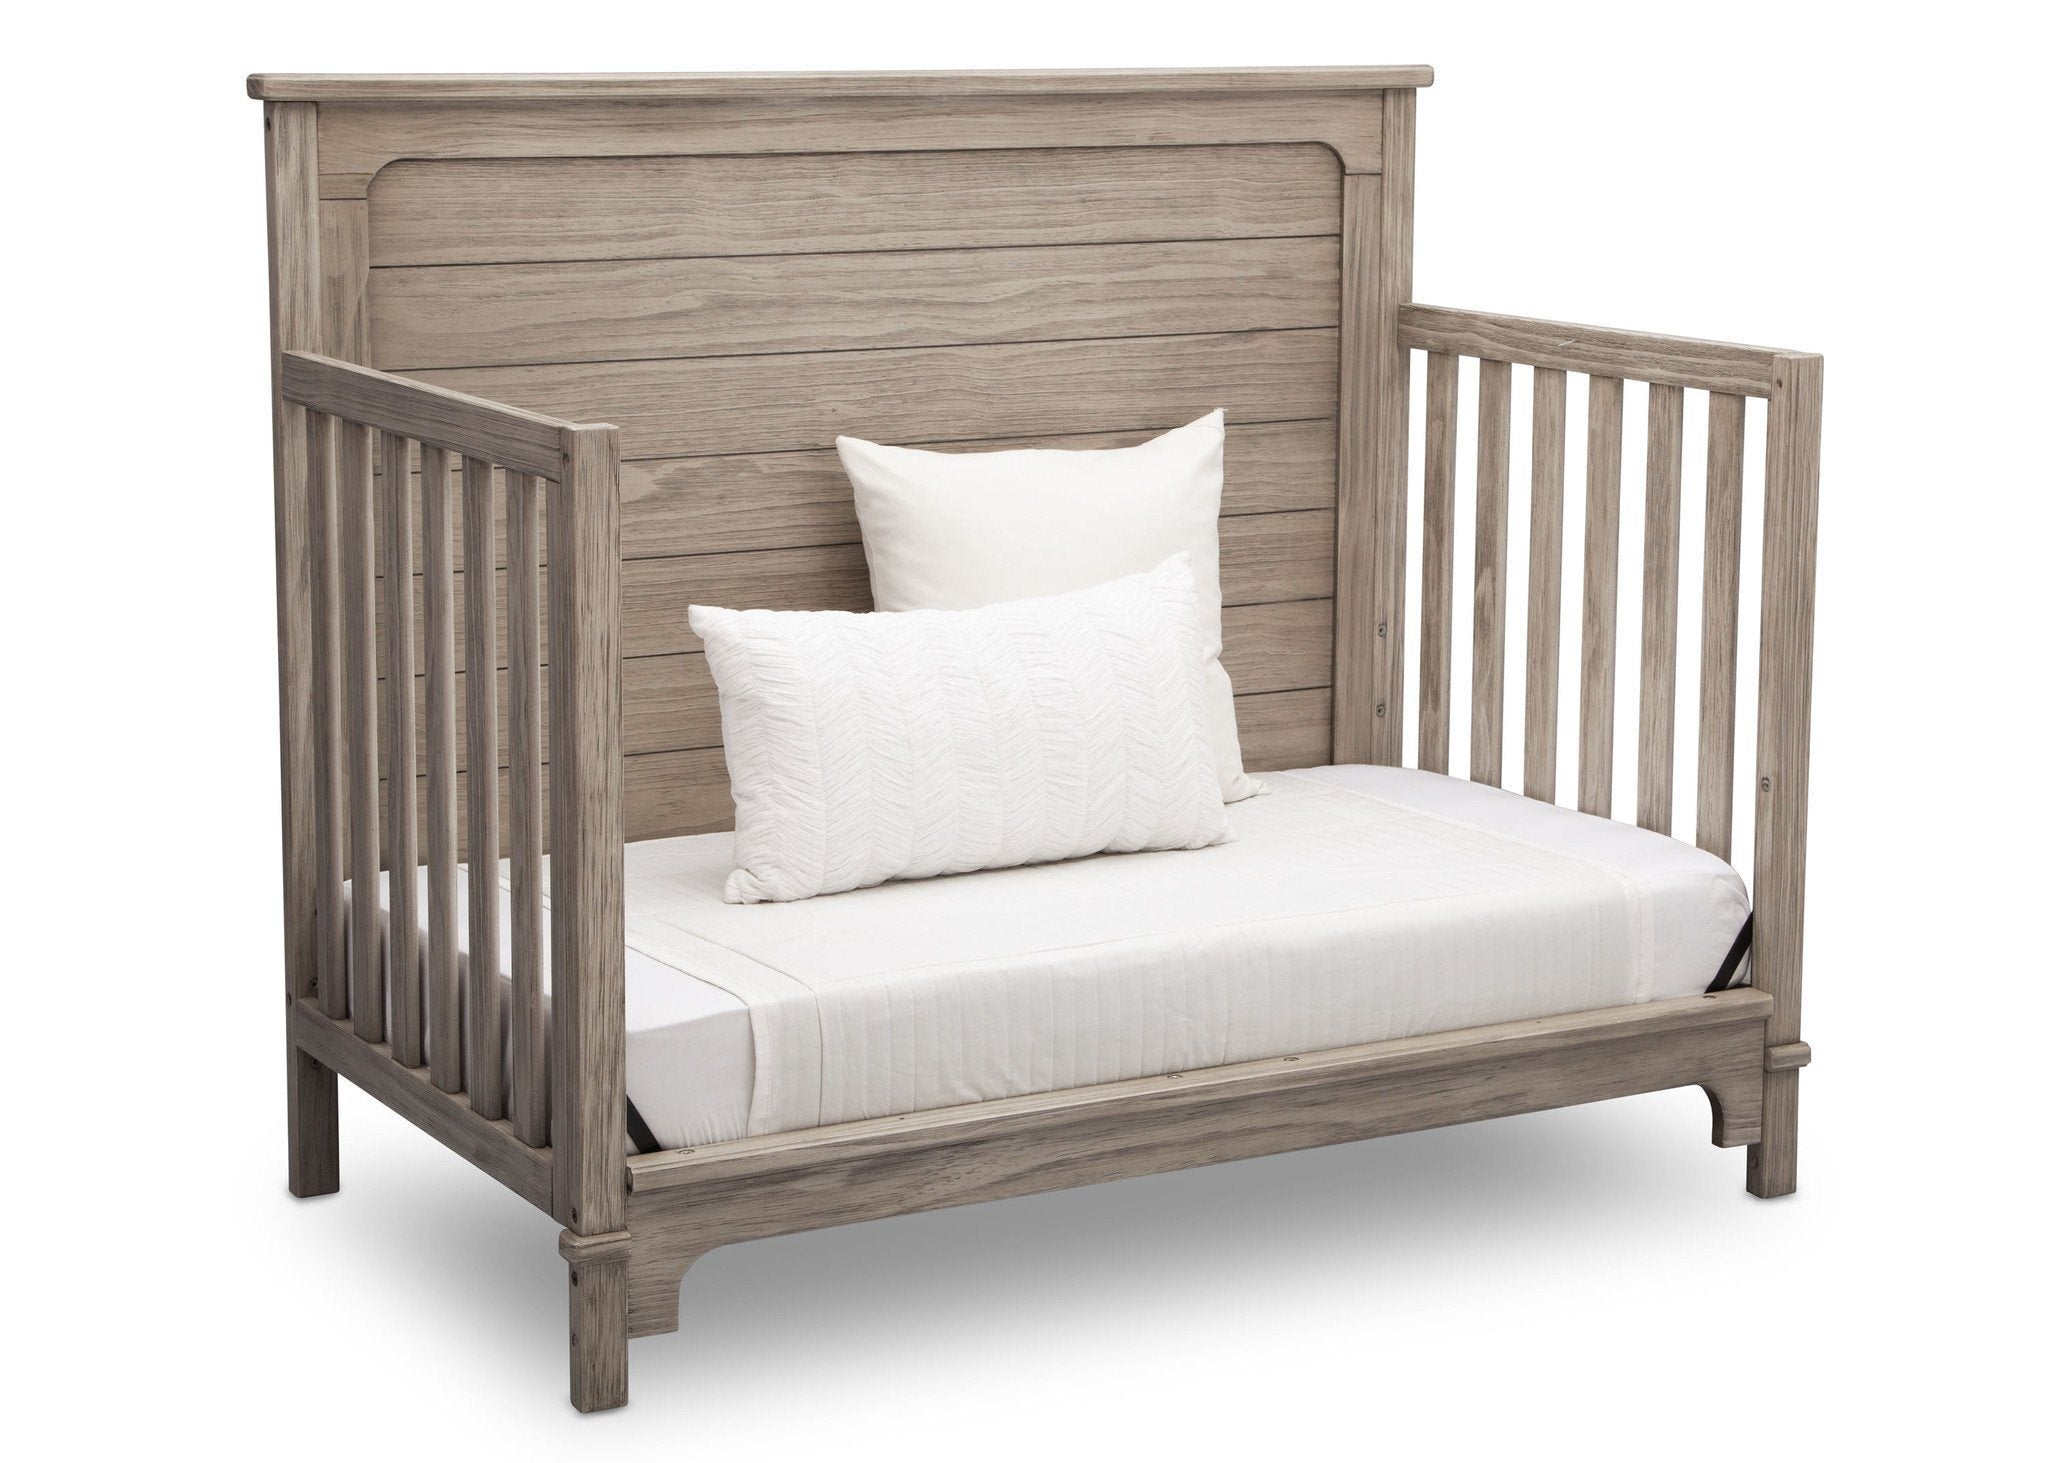 Simmons Kids Rustic White (119) Monterey Crib 'N' More, DayBed Conversion Side View b5b